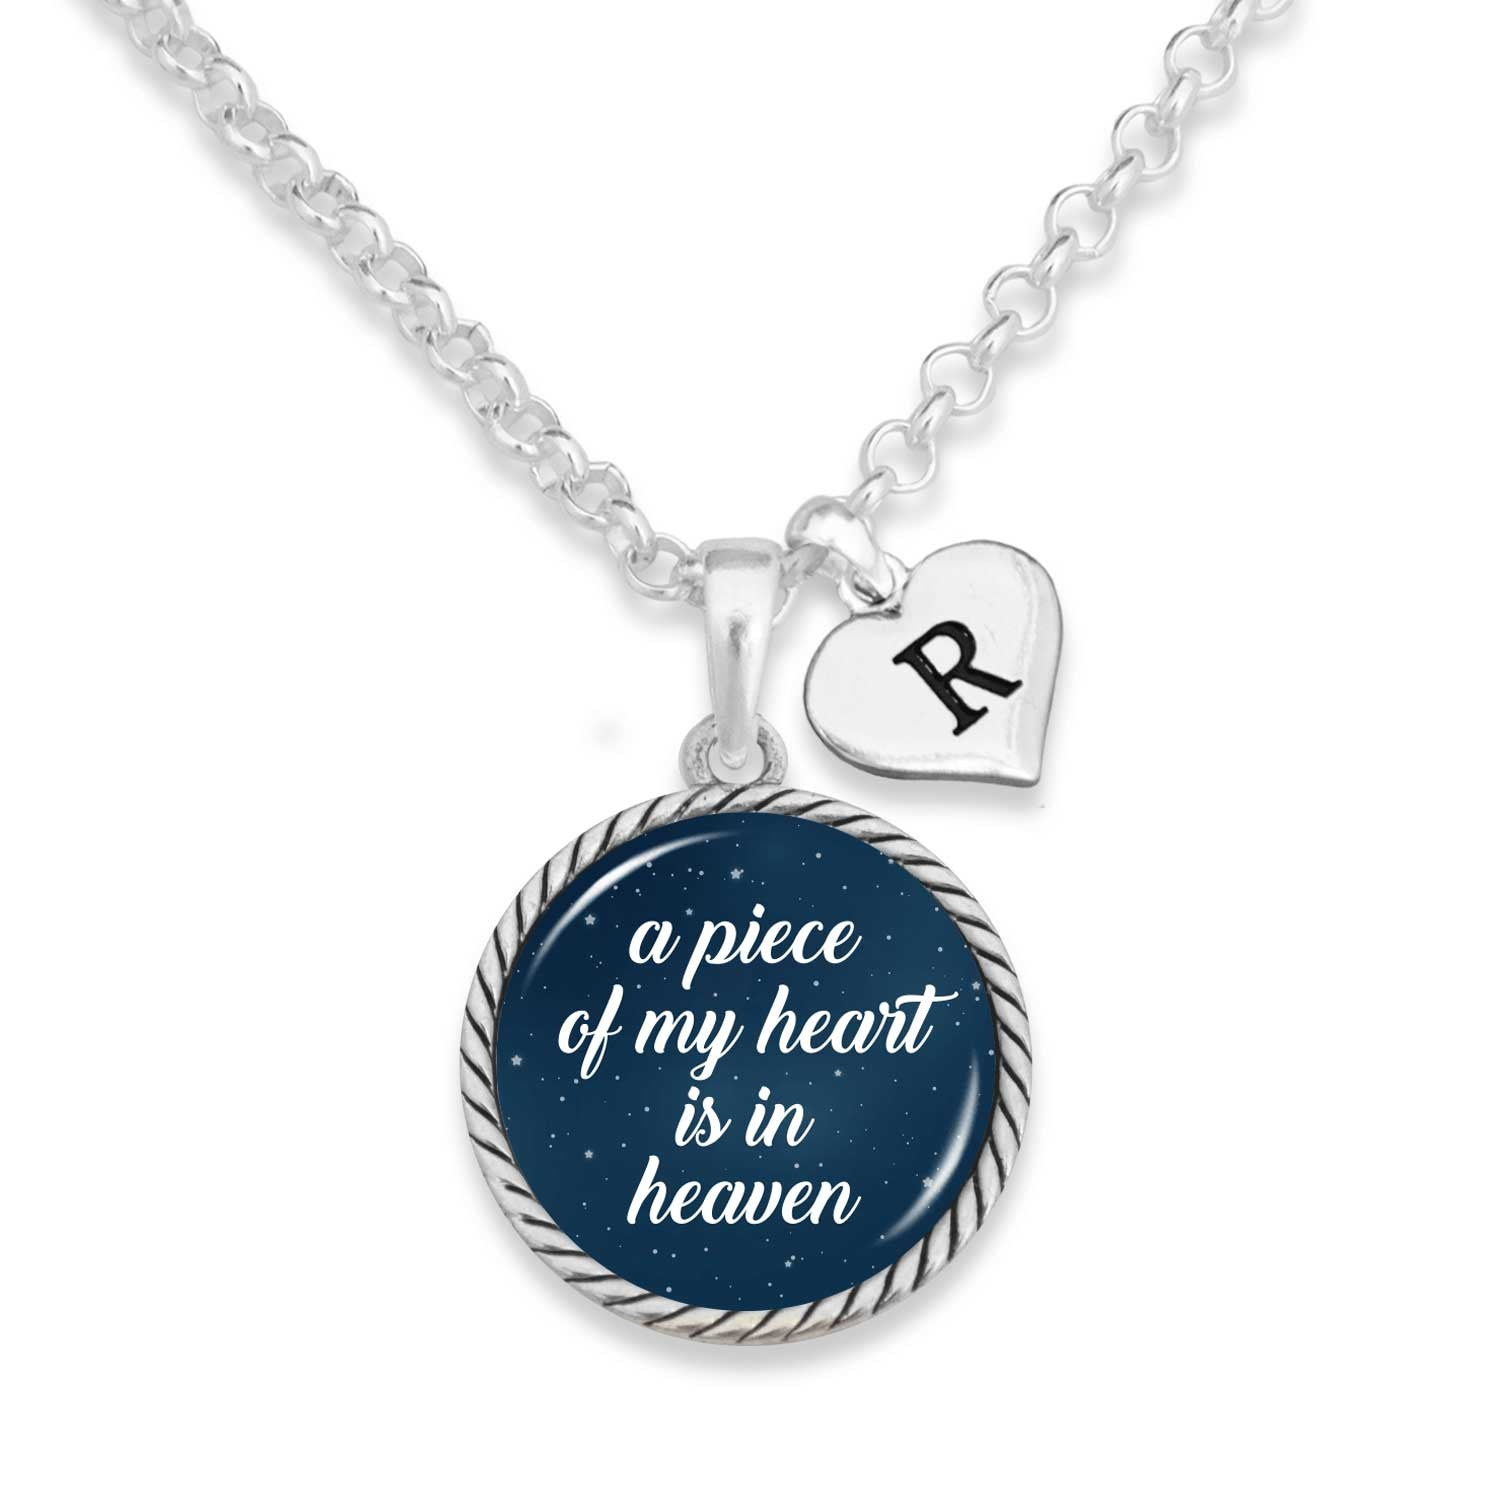 Piece Of My Heart Night Sky Personalized Initial Charm Necklace